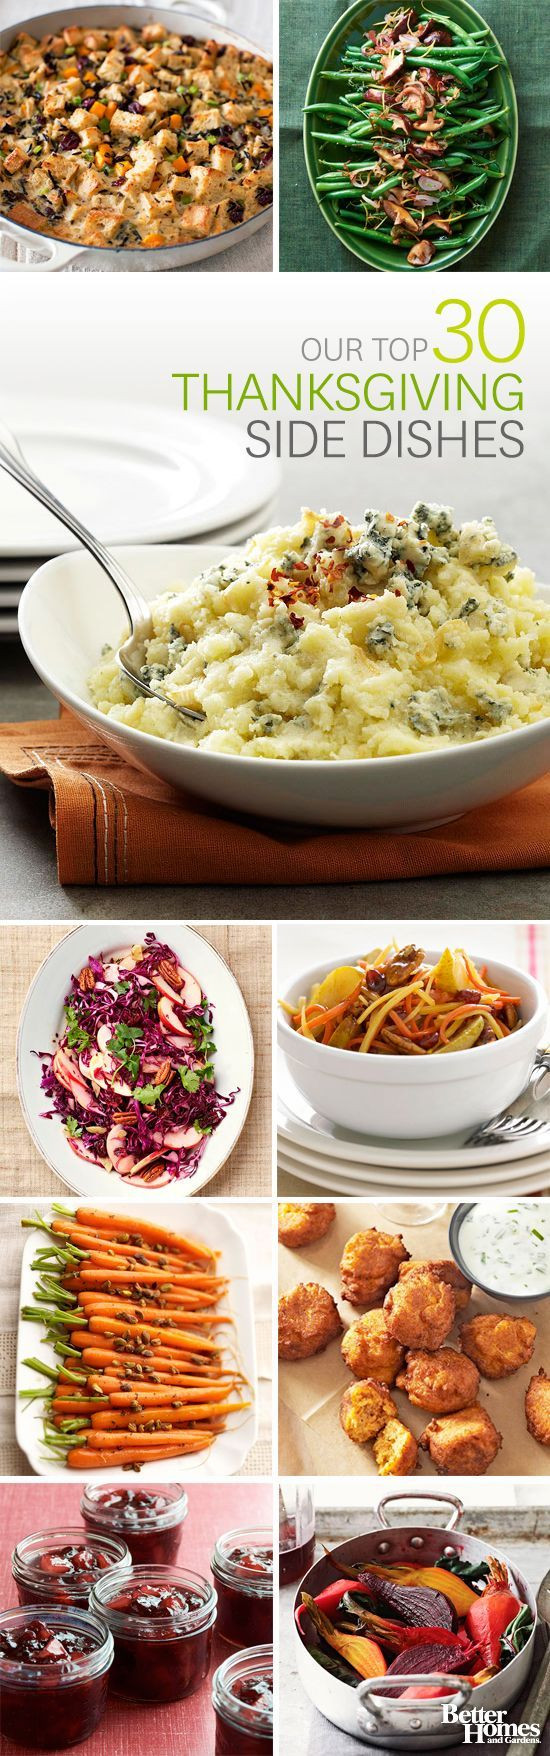 Good Christmas Side Dishes  212 best images about Thanksgiving recipes on Pinterest